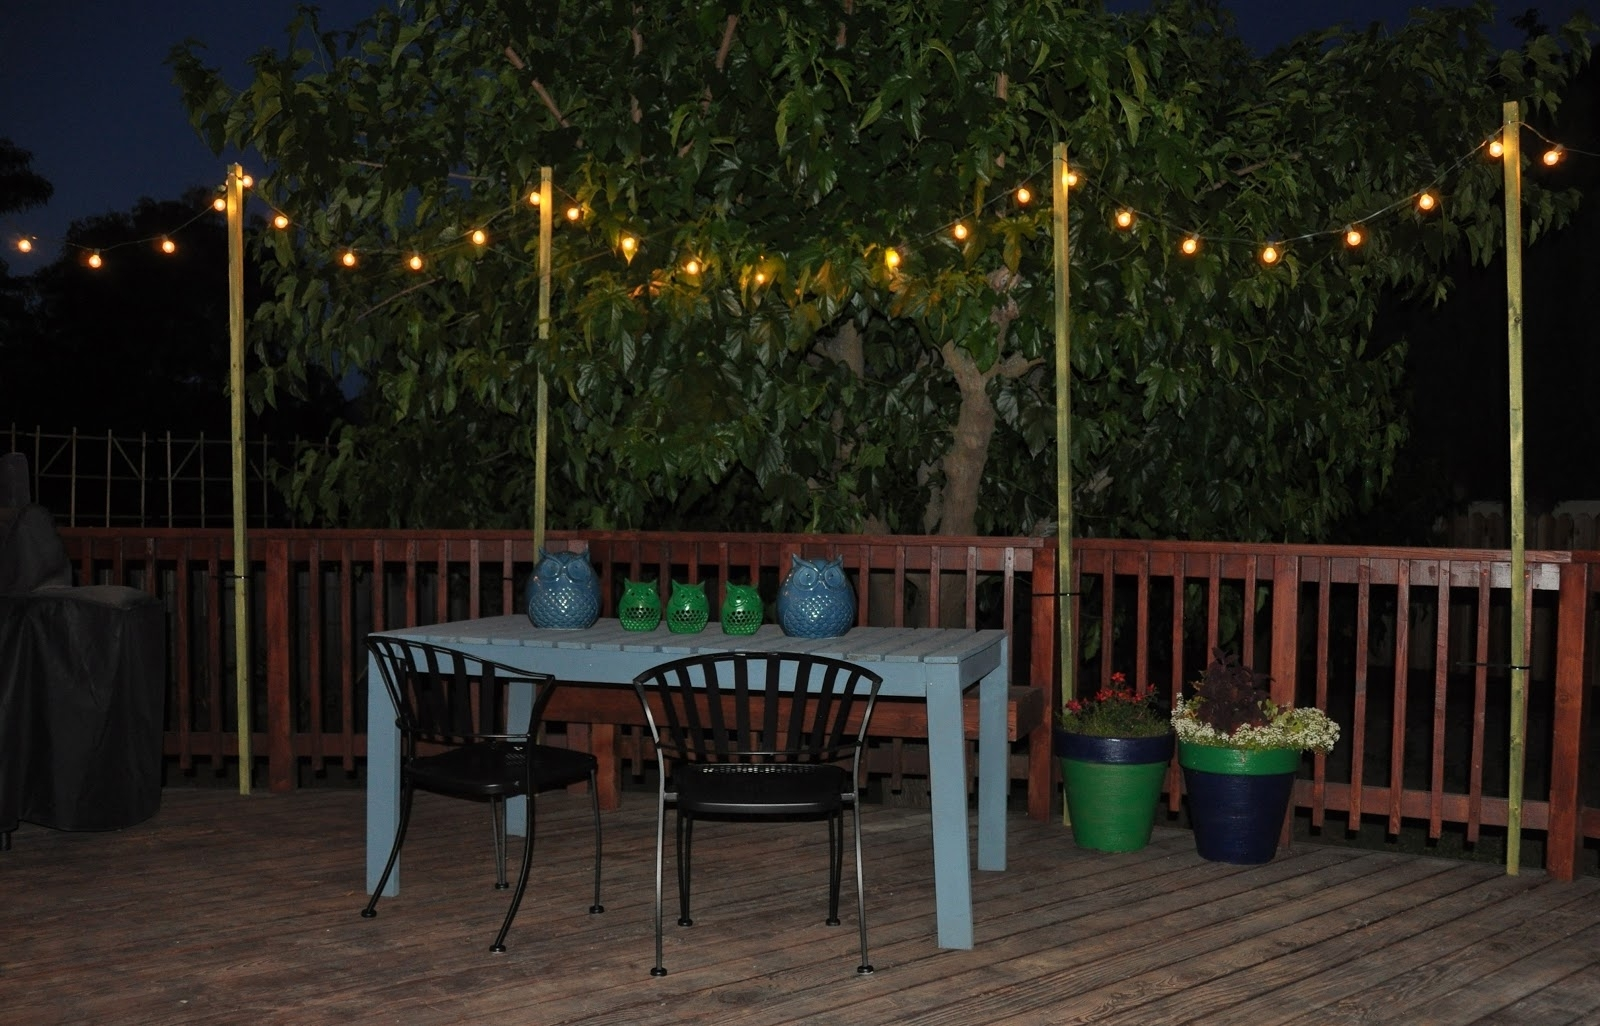 Trendy Glamorous Backyard String Lights Decorative Indoor Porch Led Hanging In Hanging Outdoor Lights In Backyard (View 11 of 20)